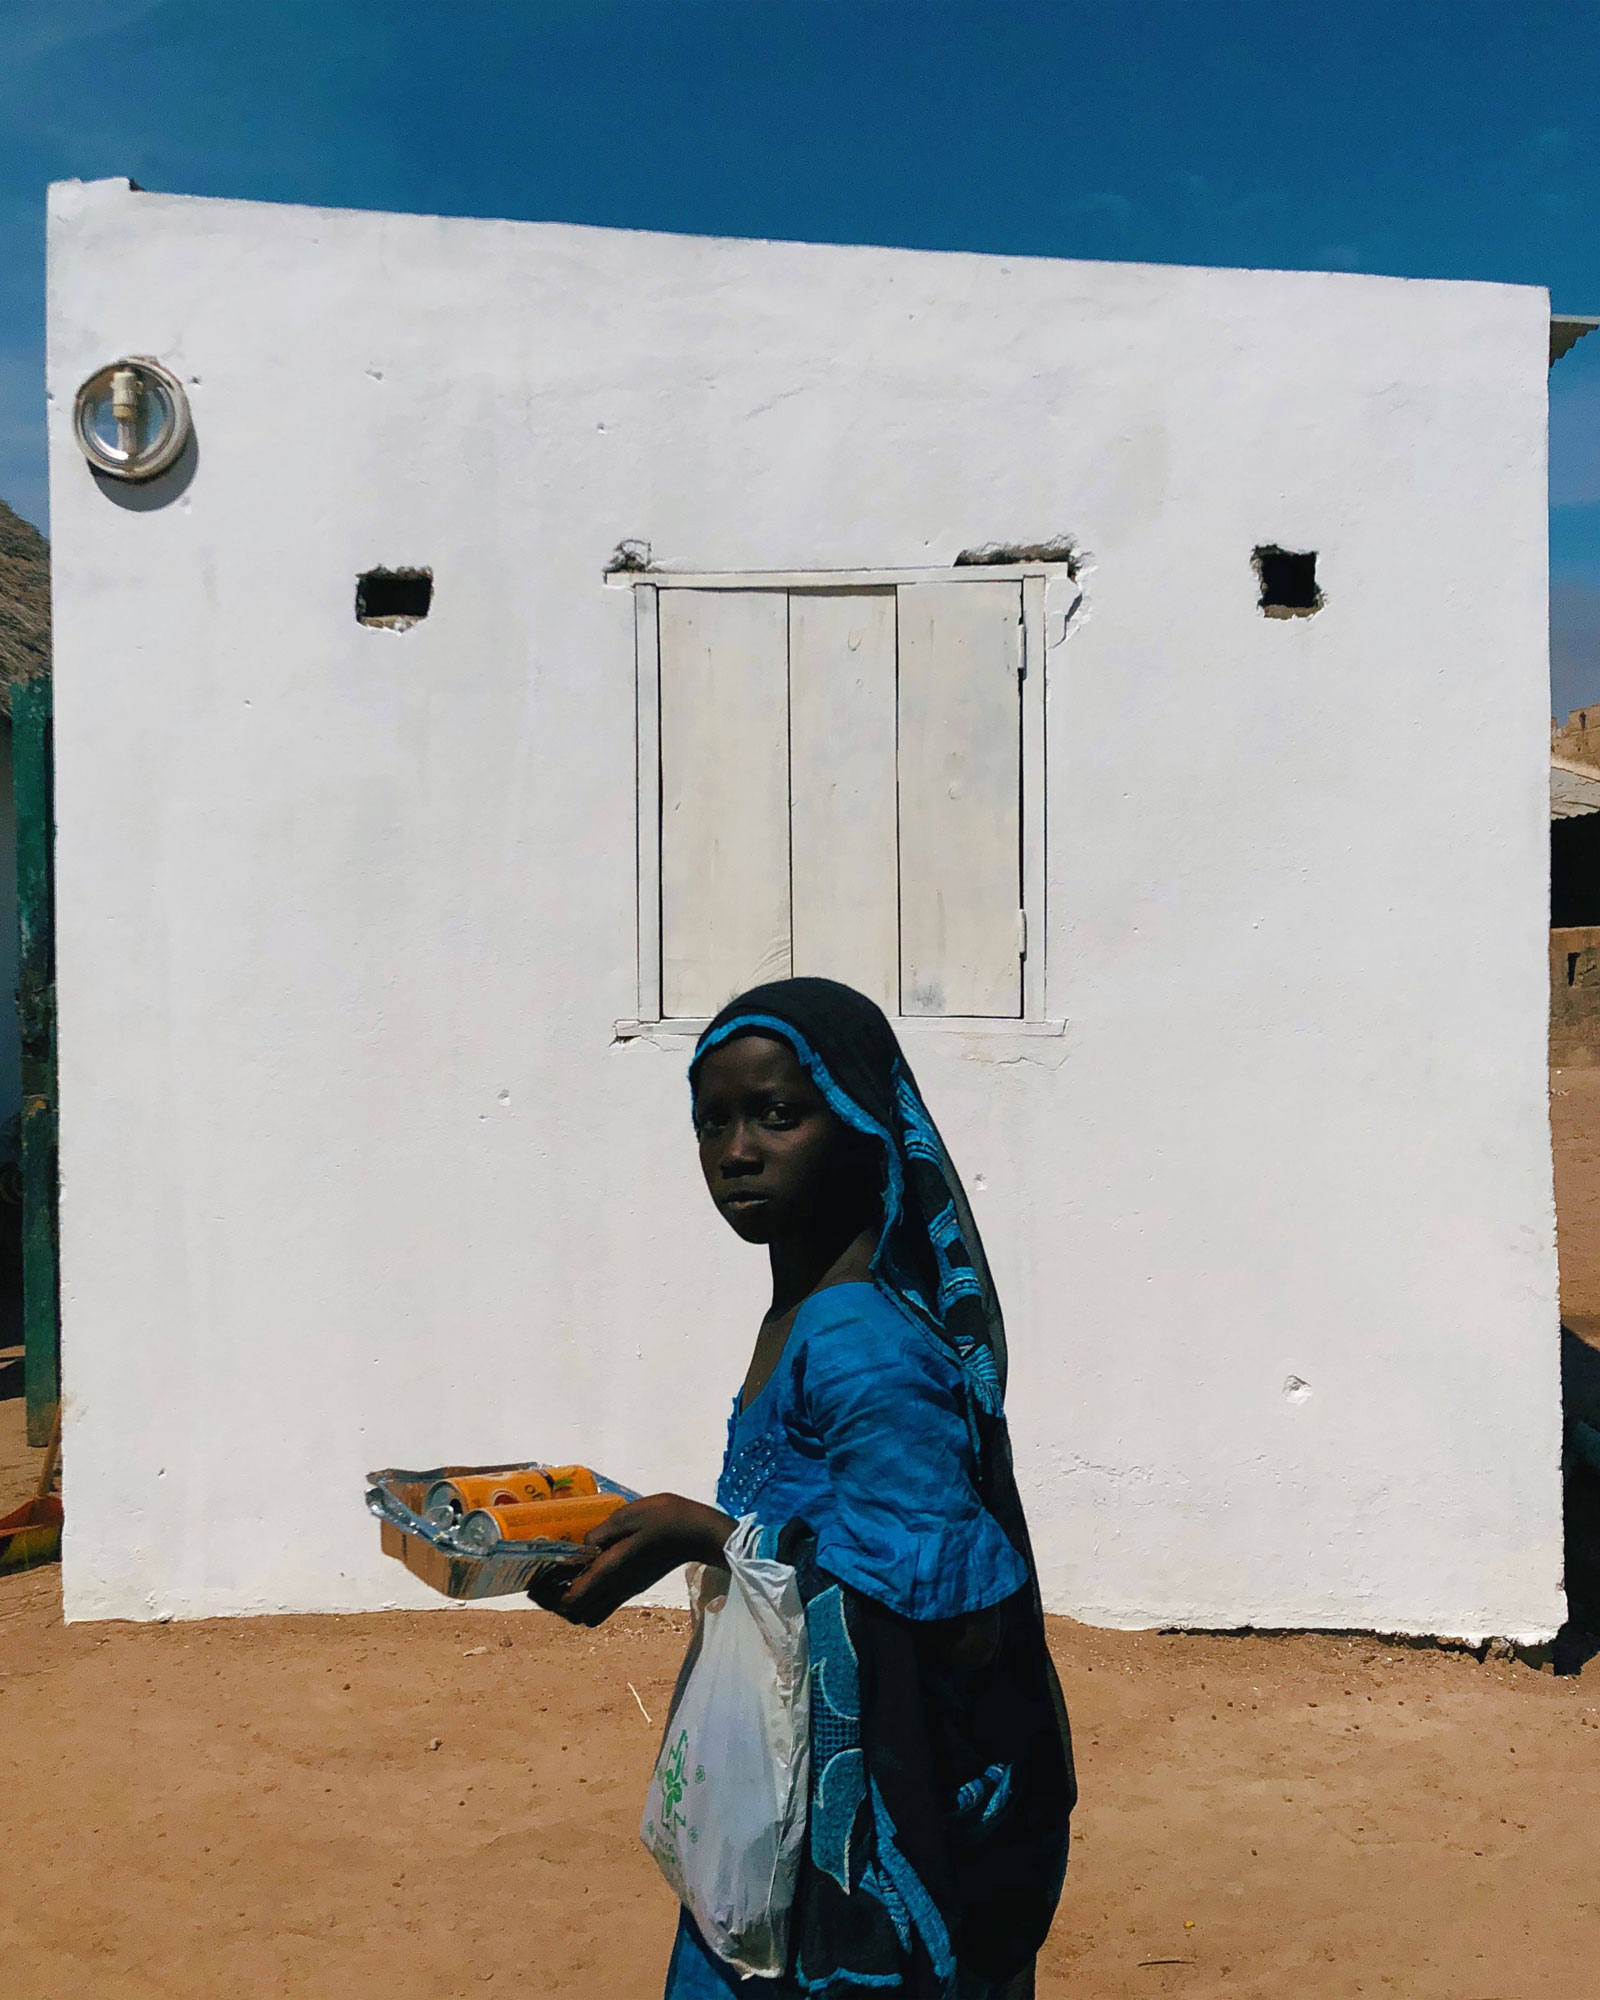 A young girl walks past a house in a remote village in Senegal